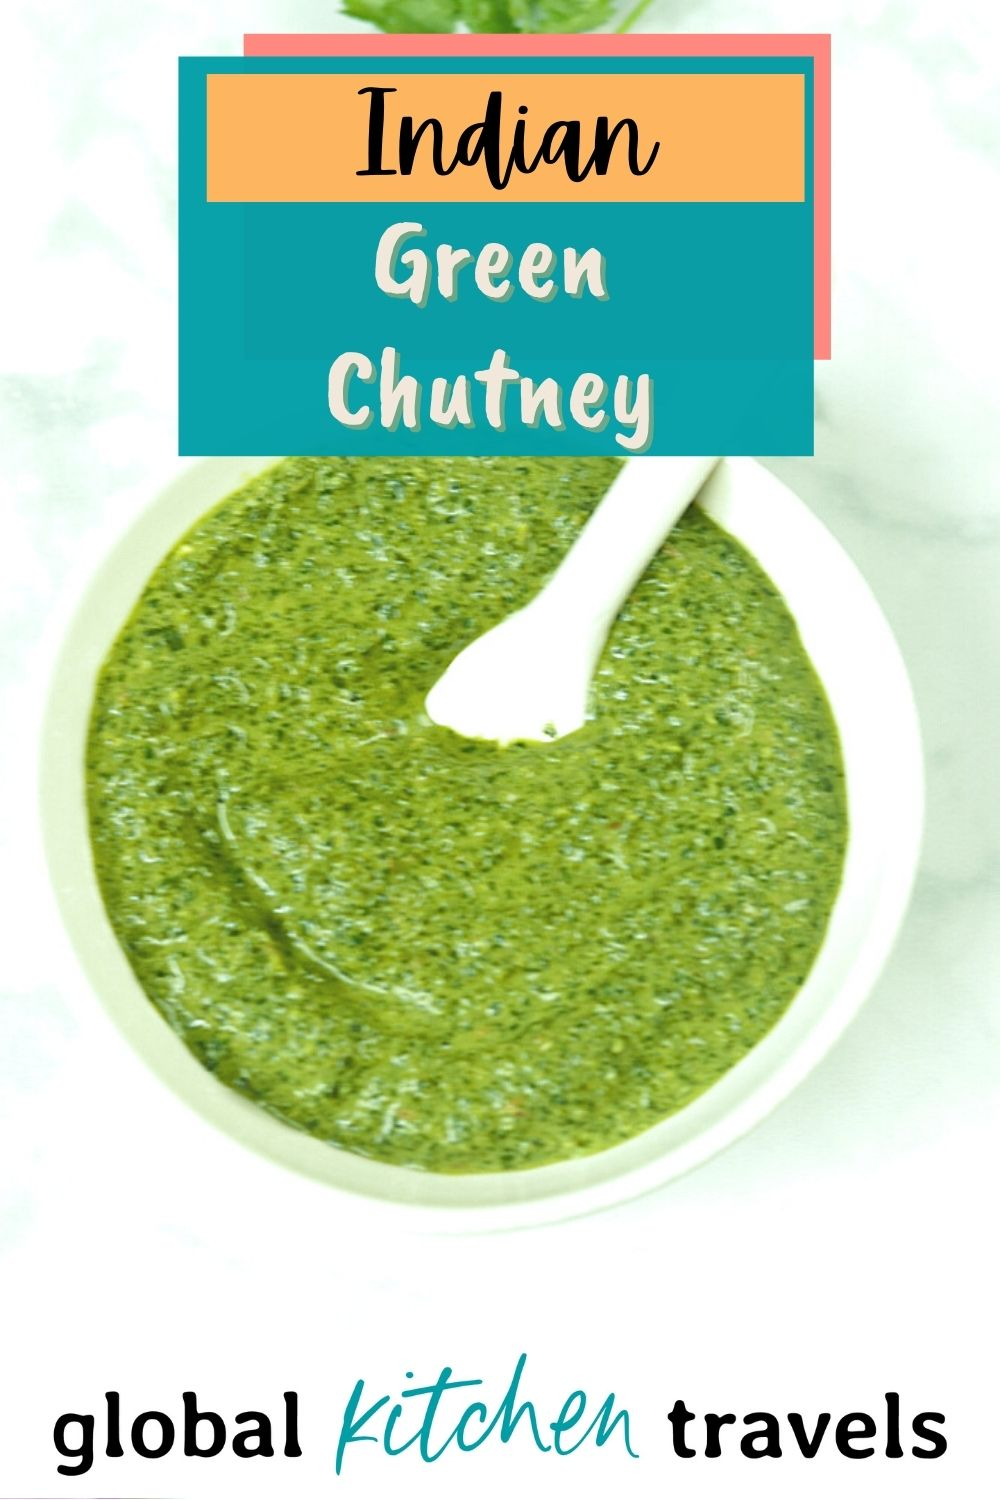 Indian Cilantro Mint Chutney in a bowl with text and logo